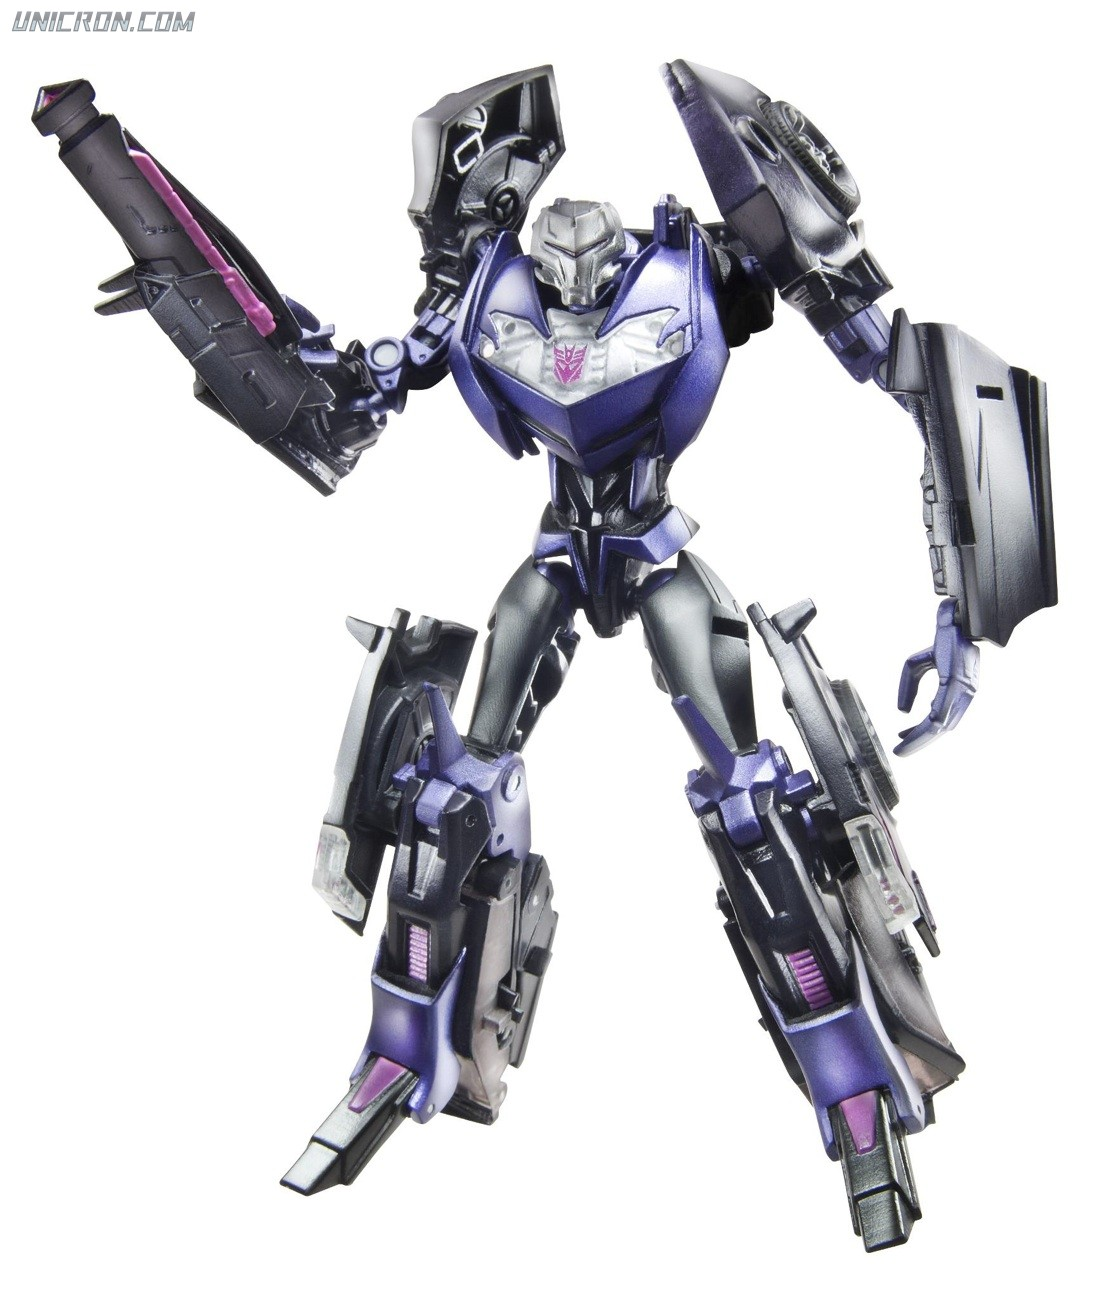 Transformers Prime Vehicon toy